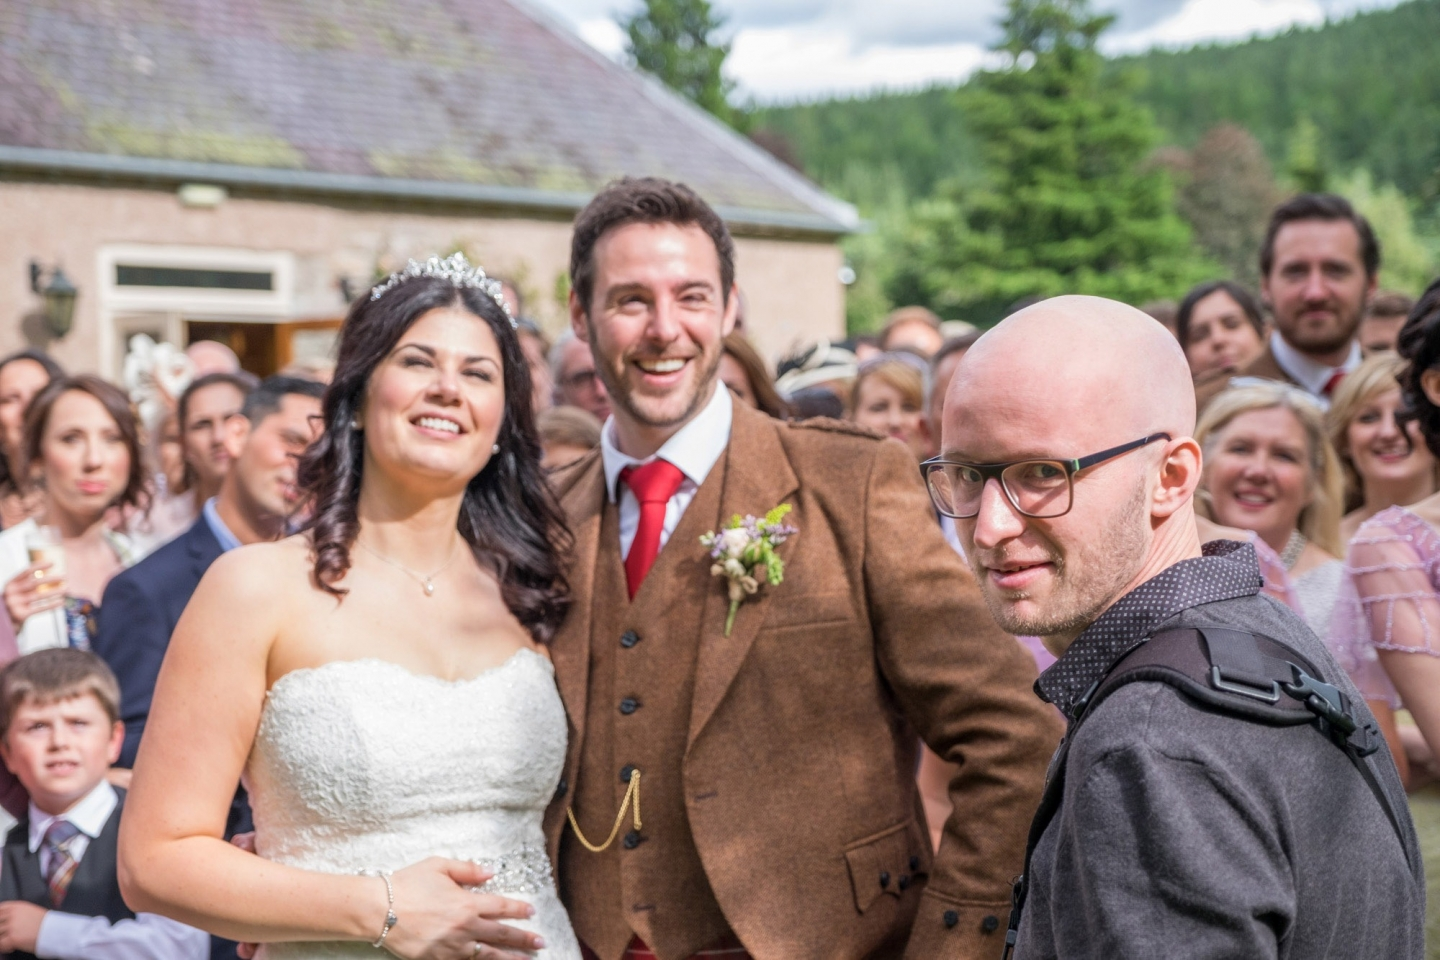 A candid photo of Jonathan Addie, an Aberdeen based wedding photographer at a wedding.